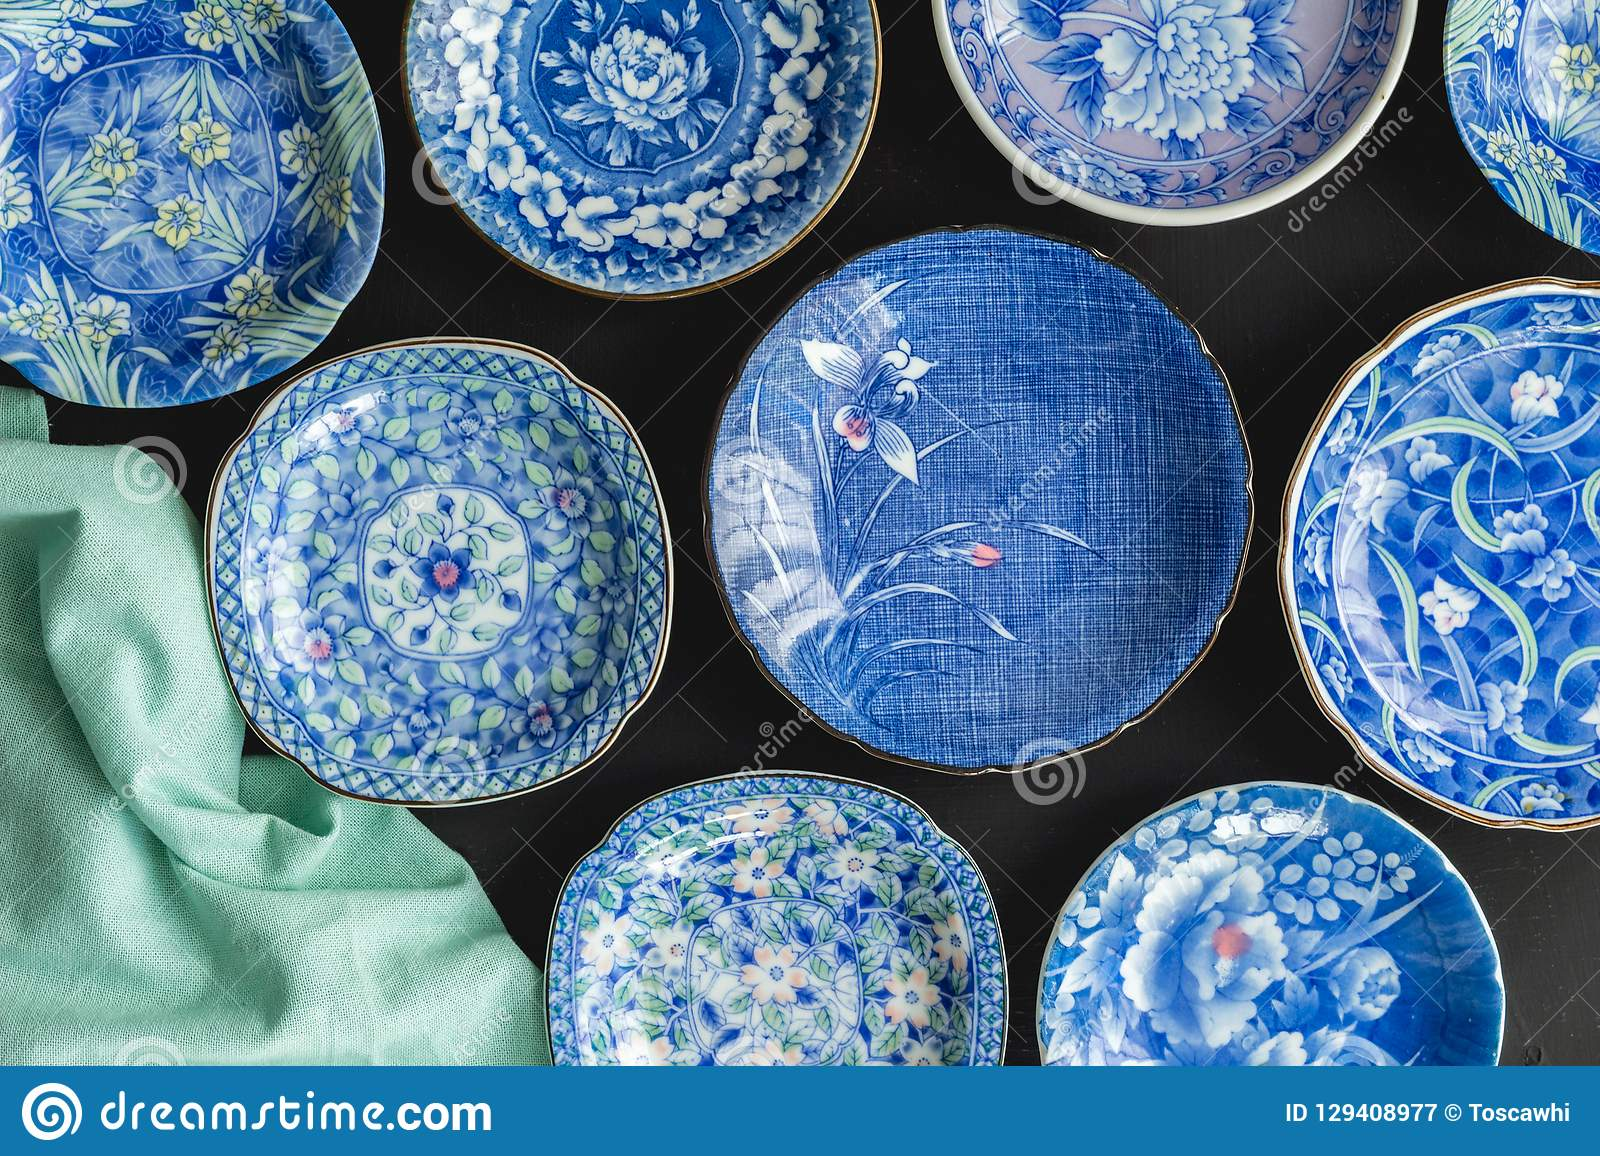 18 073 Blue Plates Photos Free Royalty Free Stock Photos From Dreamstime